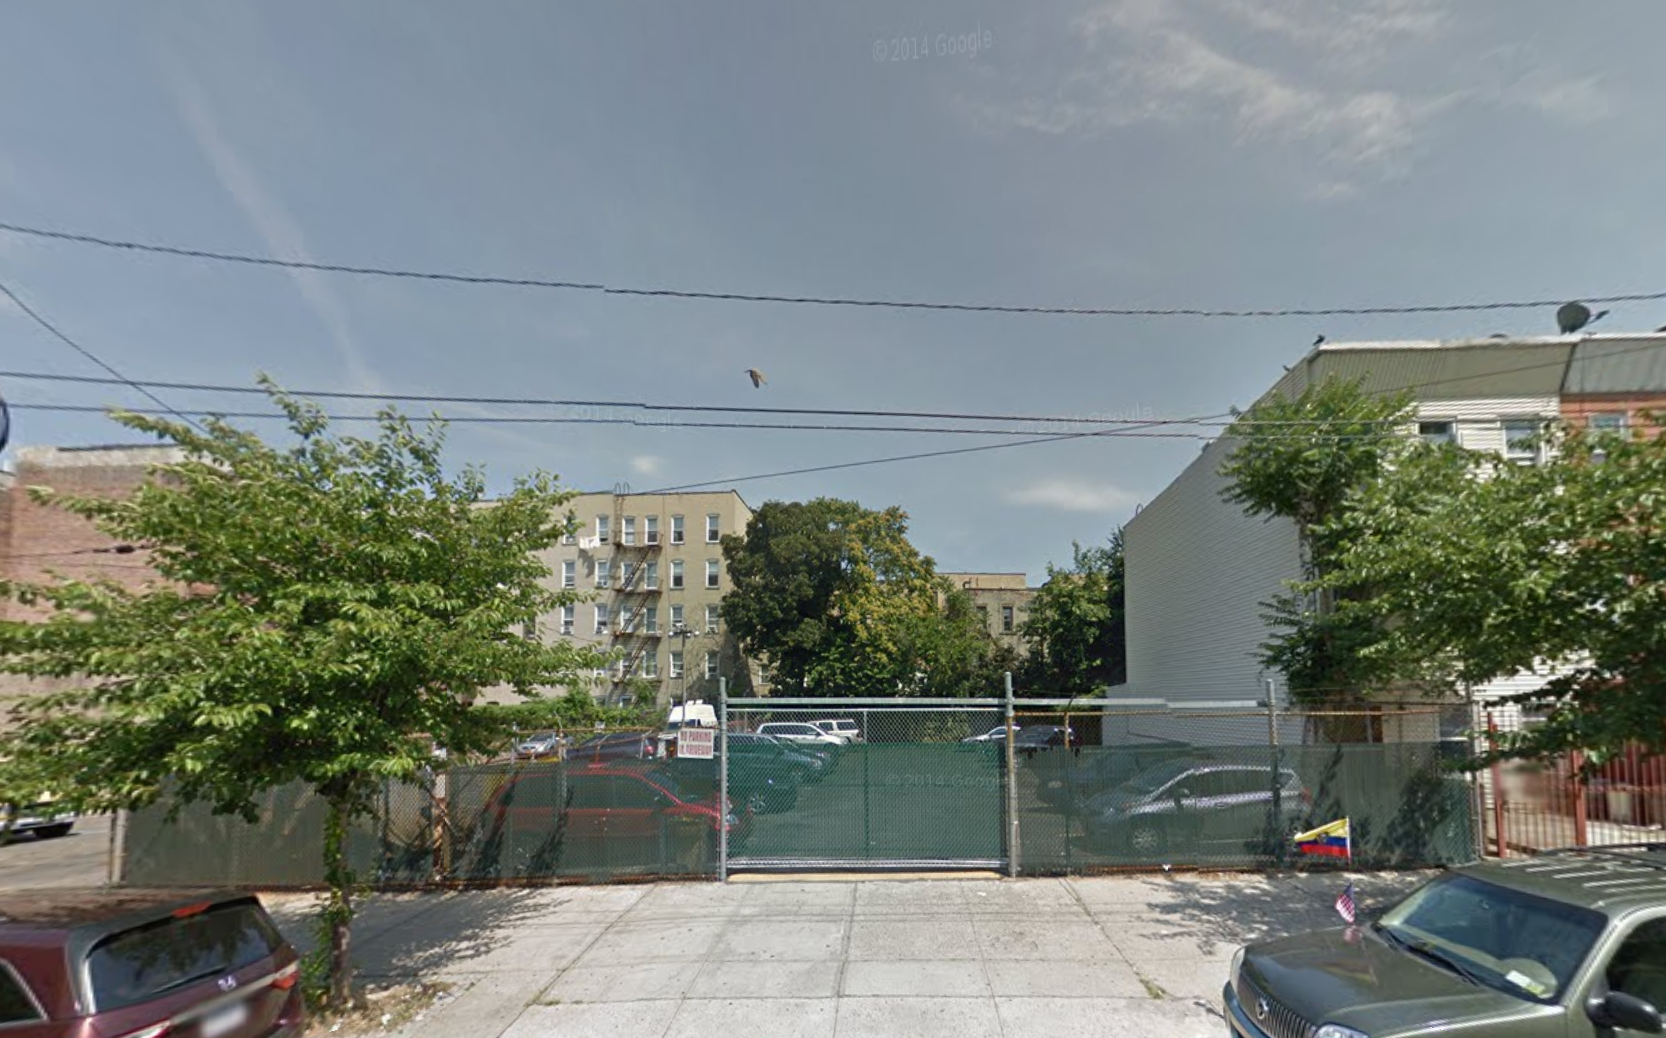 536 Wales Avenue, image via Google Maps